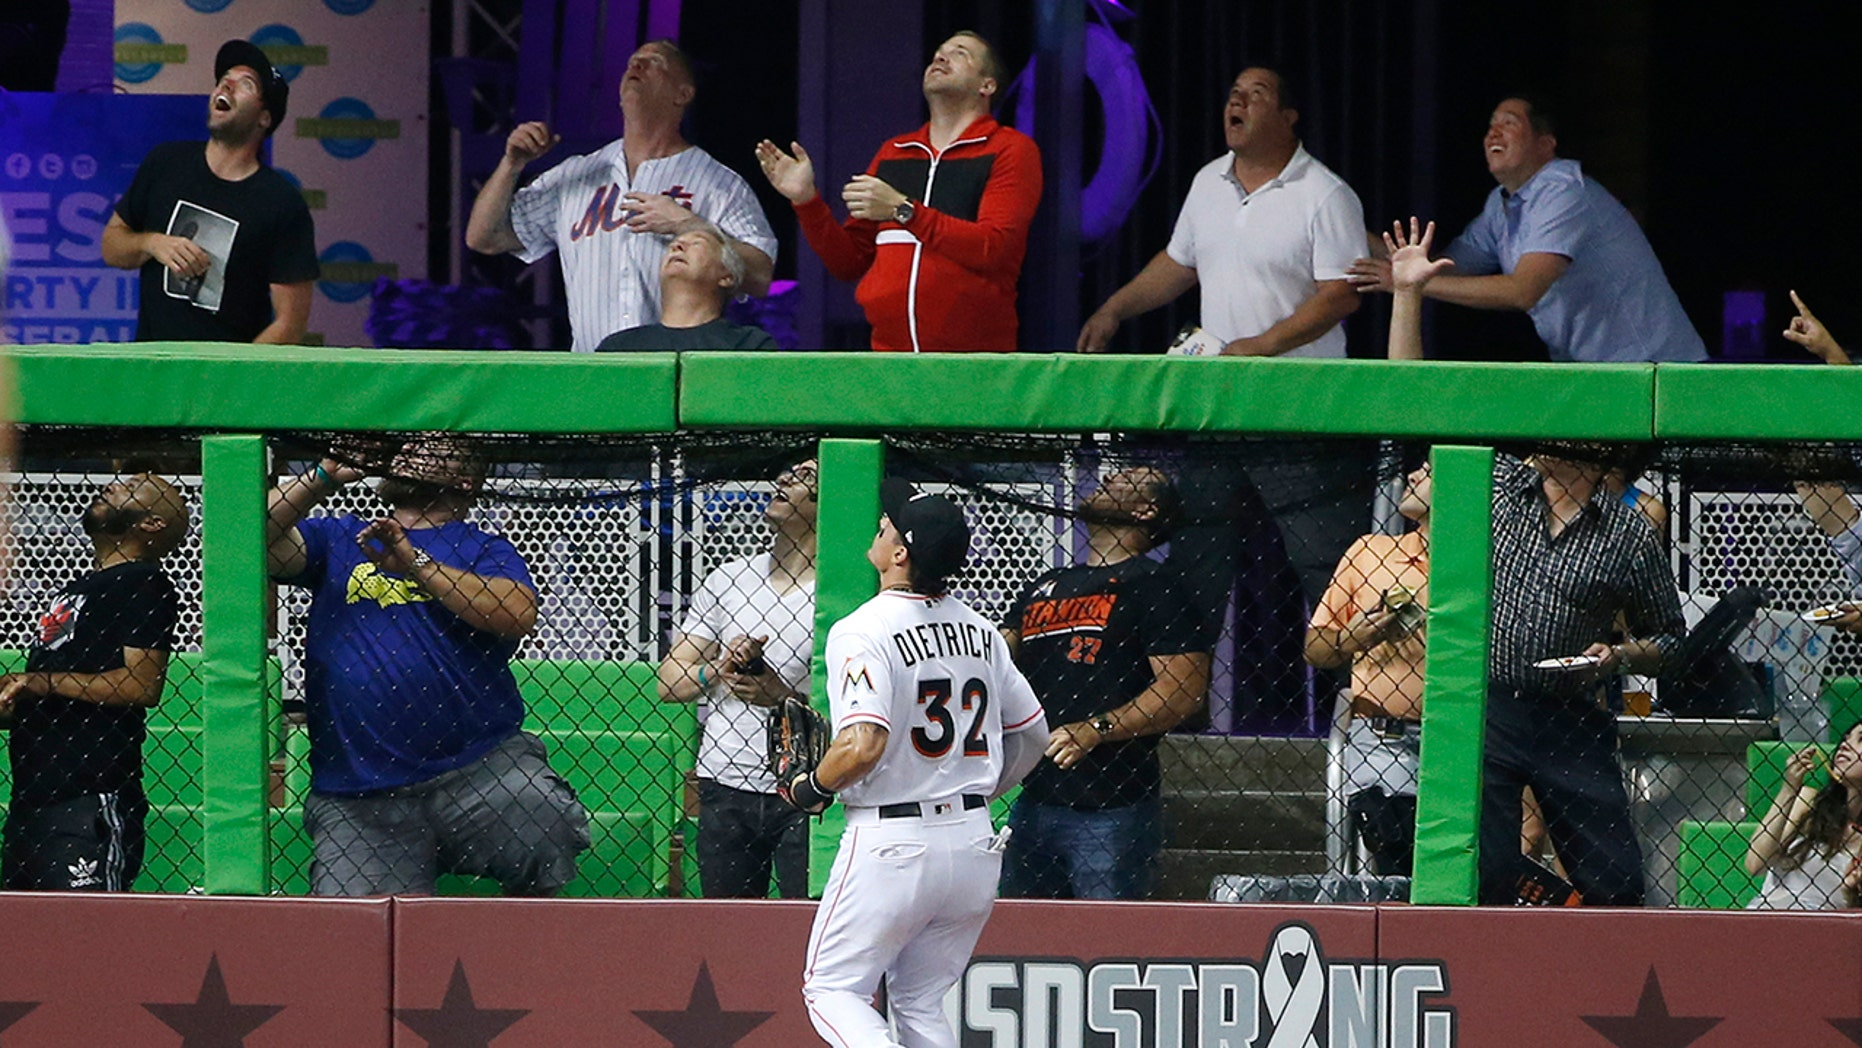 Miami Marlins left fielder Derek Dietrich (32) and fans look on as a ball hit by New York Mets' Asdrubal Cabrera goes over the wall for a home run during the fourth inning.